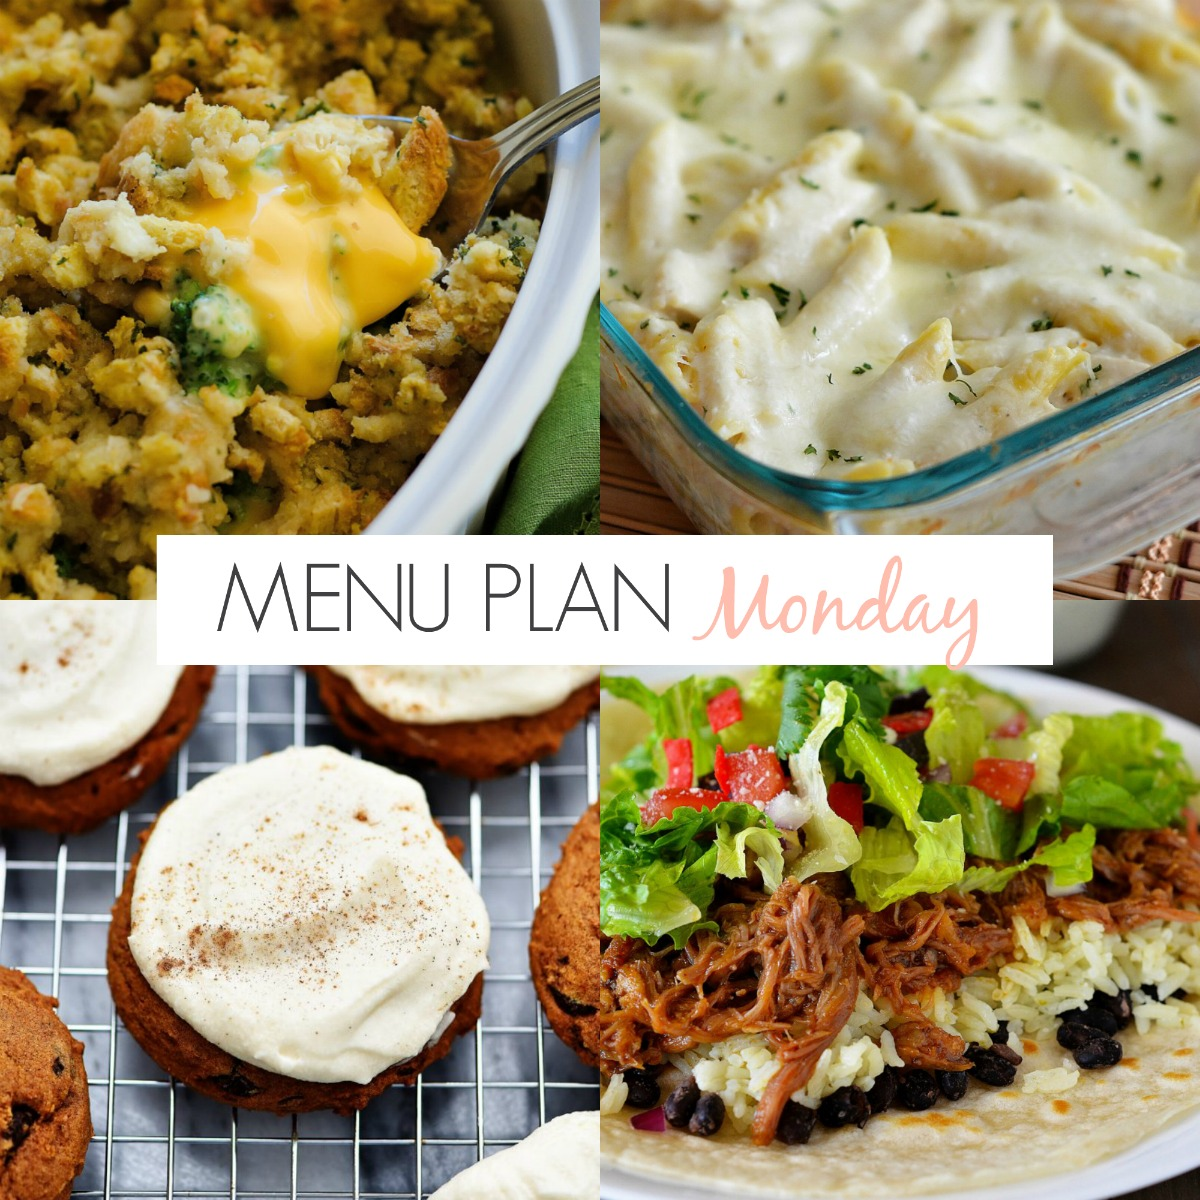 Menu Plan Monday #165. Lots of easy and yummy dinner ideas!